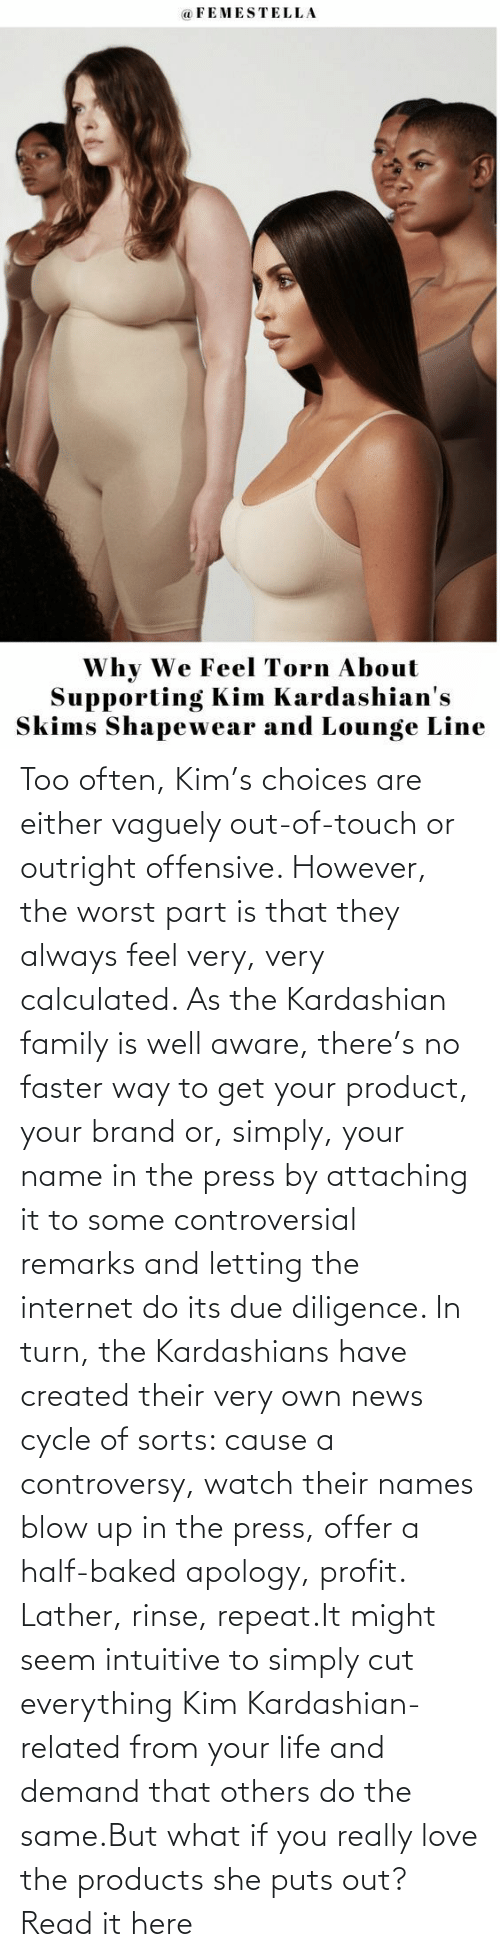 Kardashians: Too often, Kim's choices are either vaguely out-of-touch or outright offensive. However, the worst part is that they always feel very, very calculated. As the Kardashian family is well aware, there's no faster way to get your product, your brand or, simply, your name in the press by attaching it to some controversial remarks and letting the internet do its due diligence. In turn, the Kardashians have created their very own news cycle of sorts: cause a controversy, watch their names blow up in the press, offer a half-baked apology, profit. Lather, rinse, repeat.It might seem intuitive to simply cut everything Kim Kardashian-related from your life and demand that others do the same.But what if you really love the products she puts out?Read it here